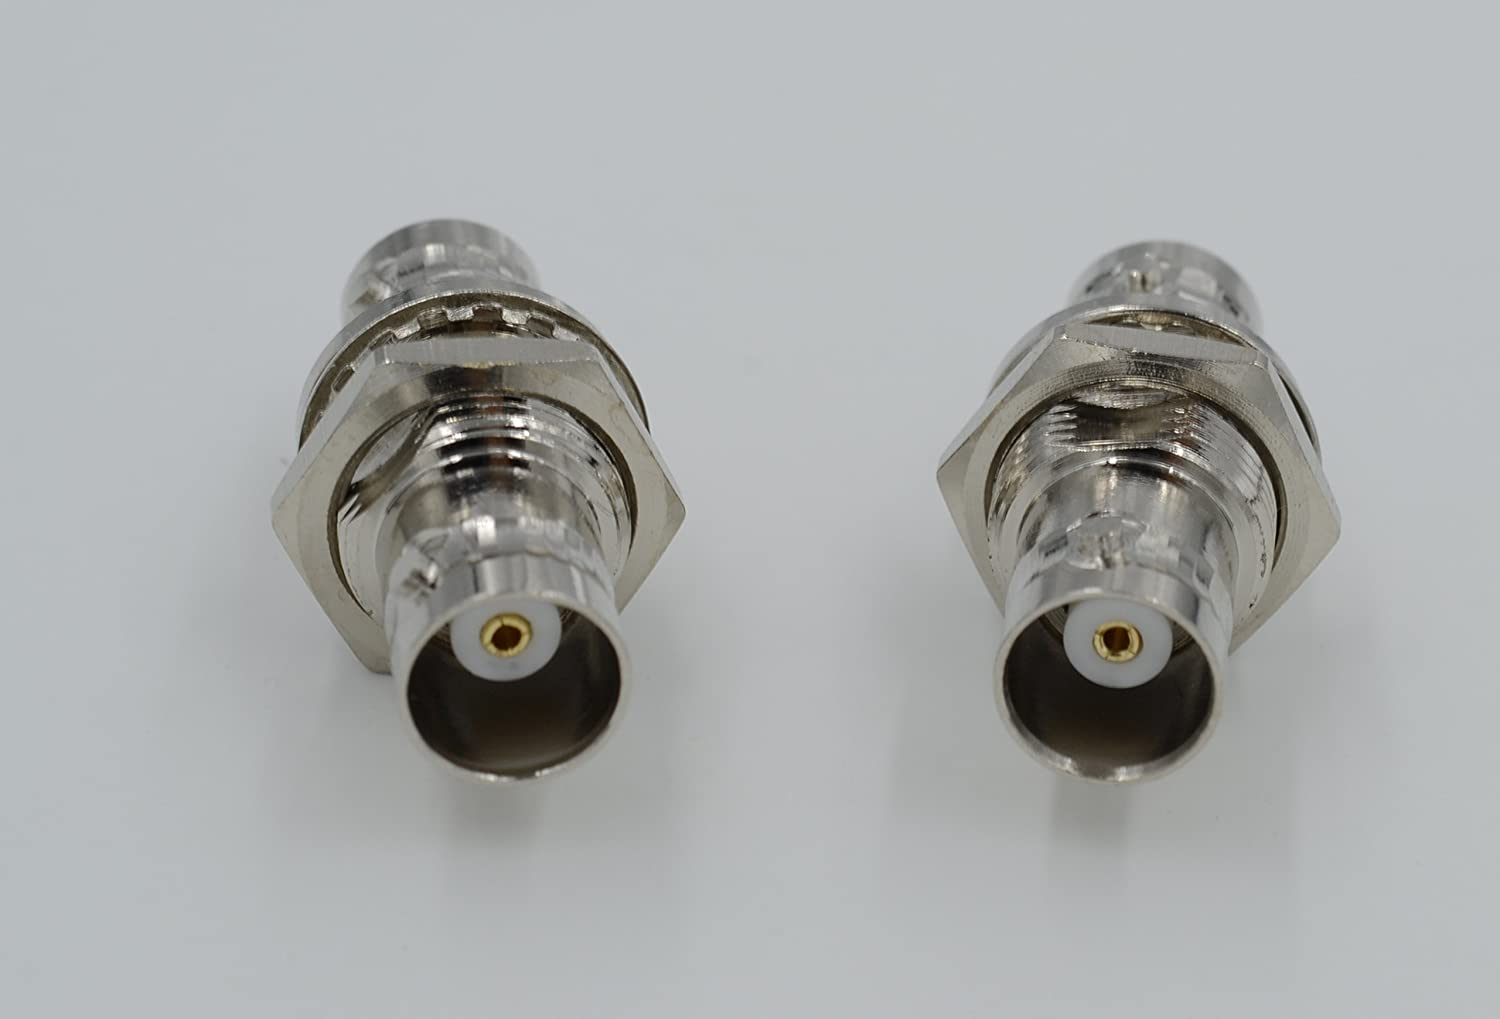 Not Alloy Pure Copper BNC Female Jack to BNC Female Jack with nut Bulkhead RF Coax Adapter Connector High Value 2pcs Ships from USA